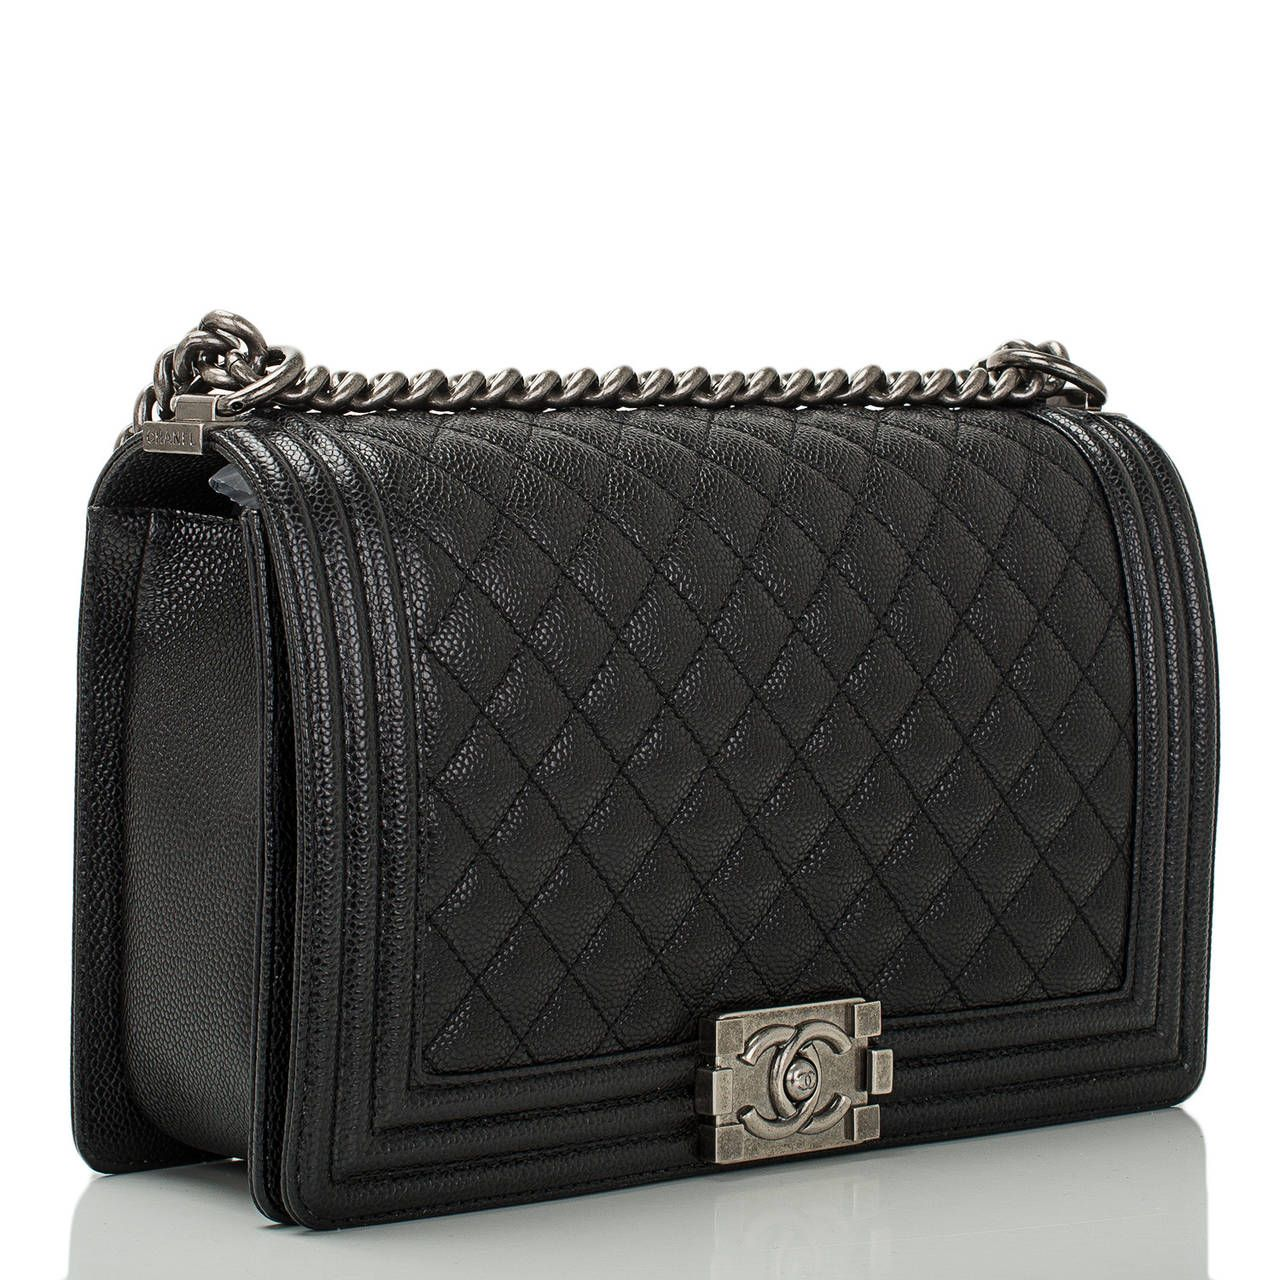 6f4441780932 On the waitlist, coming soon. Yay! Chanel Quilted Boy Bag New Medium in  Black Caviar with Ruthenium Hardware